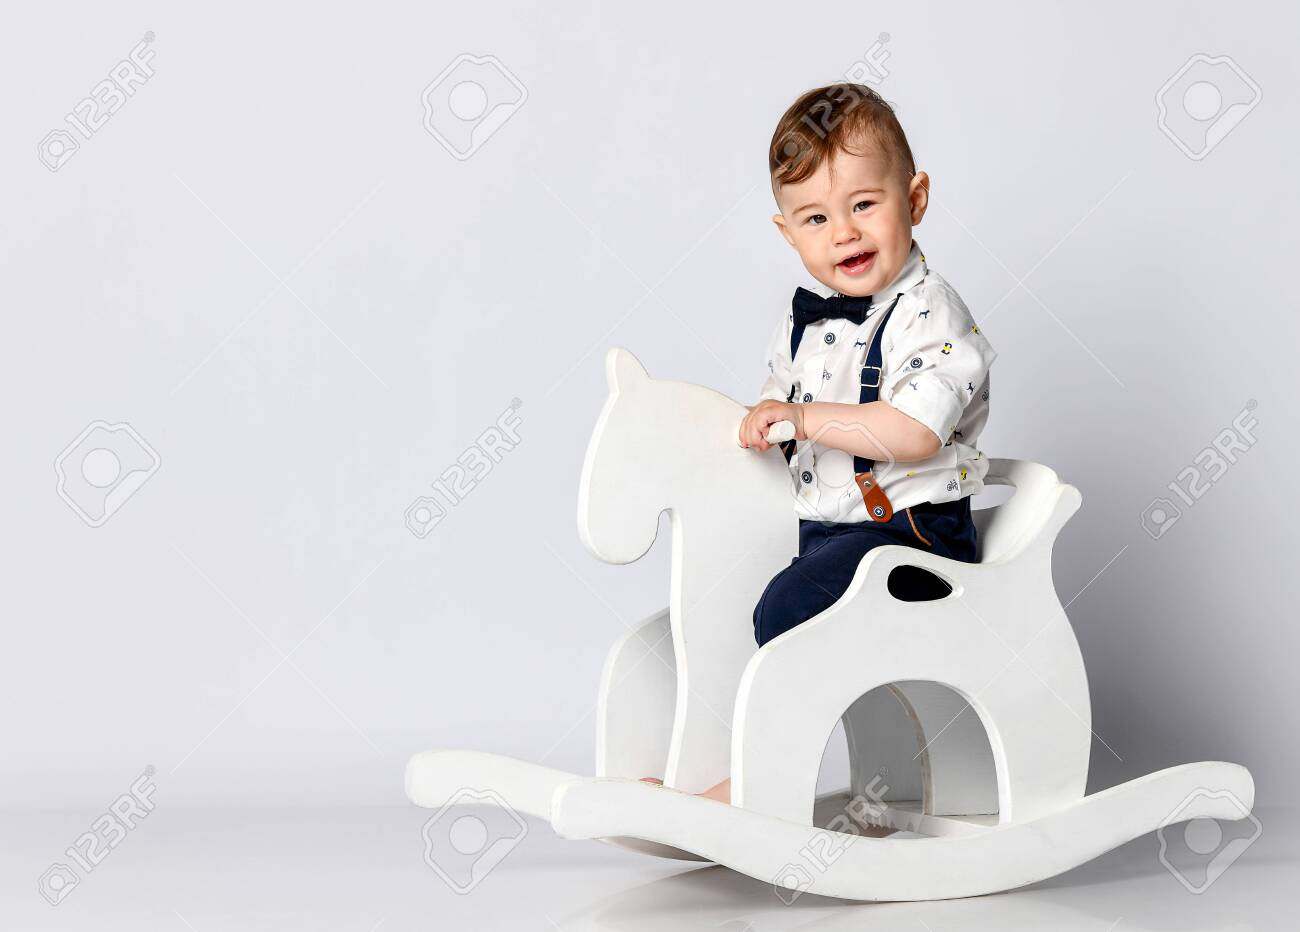 Funny Baby Sitting On The Toy Horse In White Studio Background Stock Photo Picture And Royalty Free Image Image 129165802